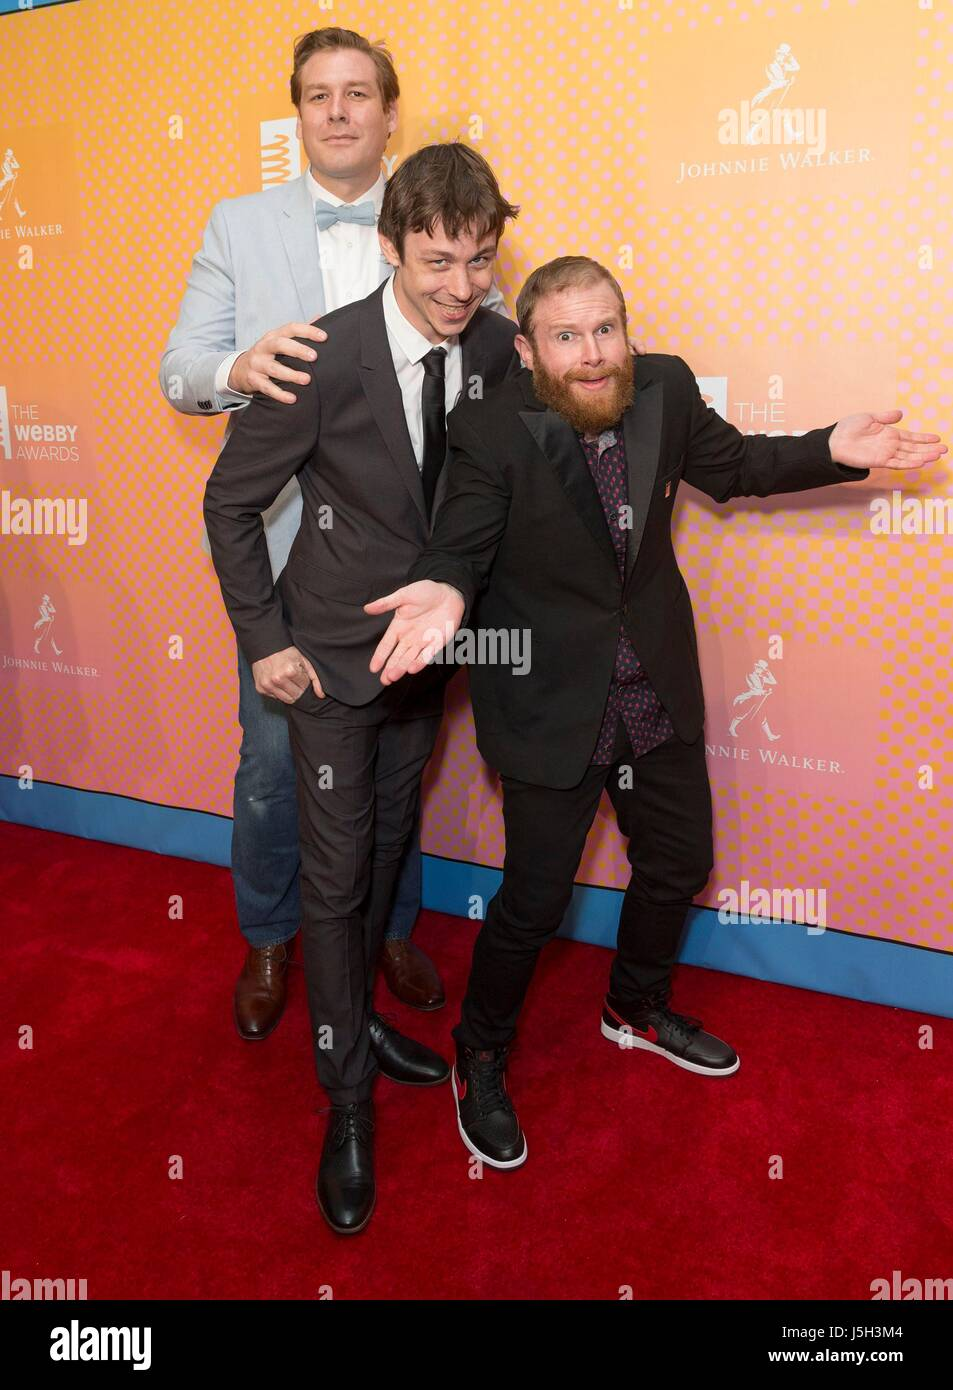 Ben Kissel Marcus Parks Henry Zebrowski At Arrivals For 21st Annual Stock Photo Alamy Check out our ben kissel selection for the very best in unique or custom, handmade pieces from our laptop shops. https www alamy com stock photo ben kissel marcus parks henry zebrowski at arrivals for 21st annual 141132324 html